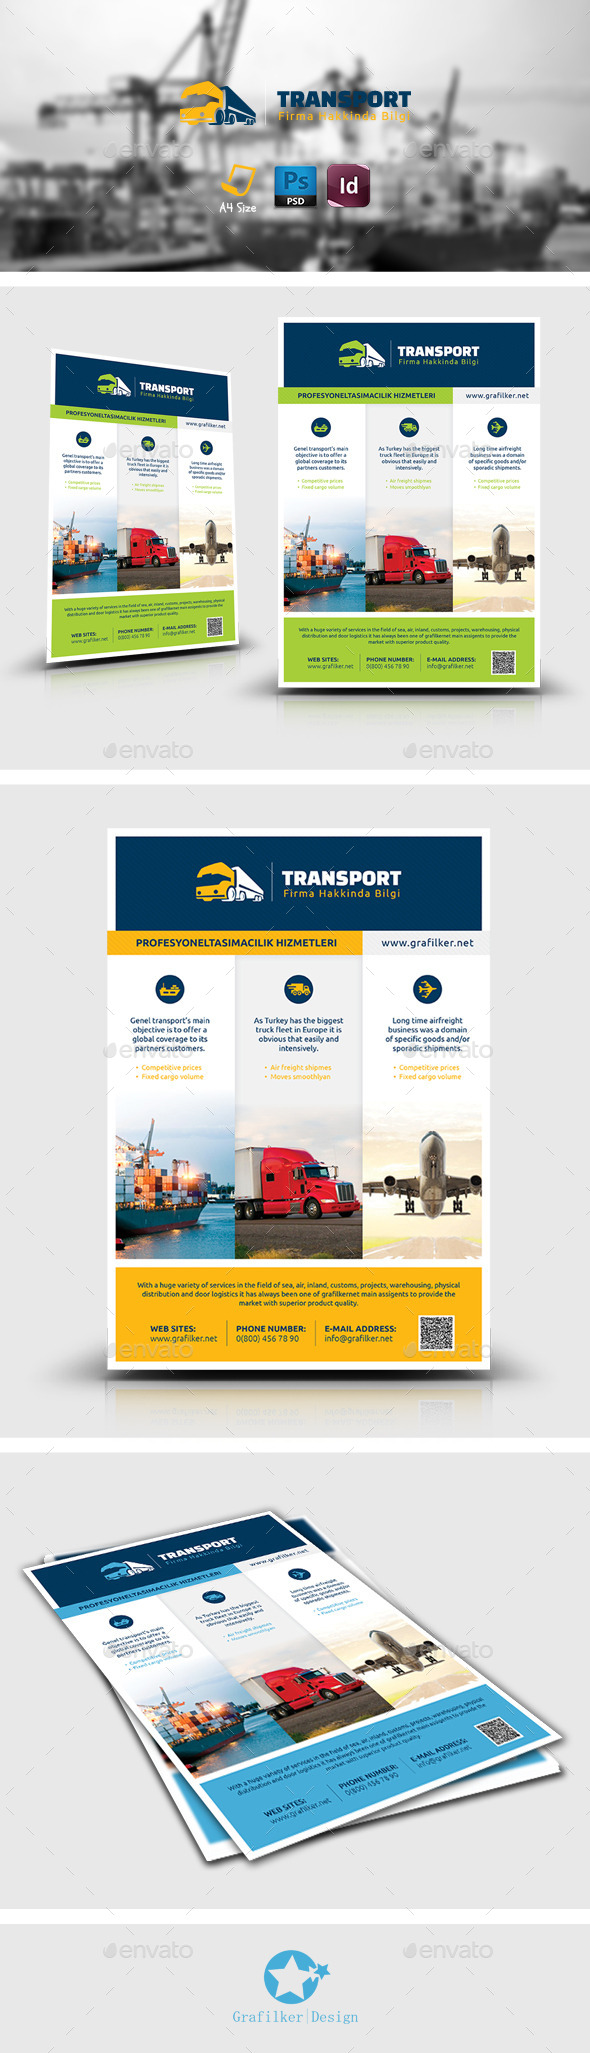 Transport Flyer Templates - Corporate Flyers